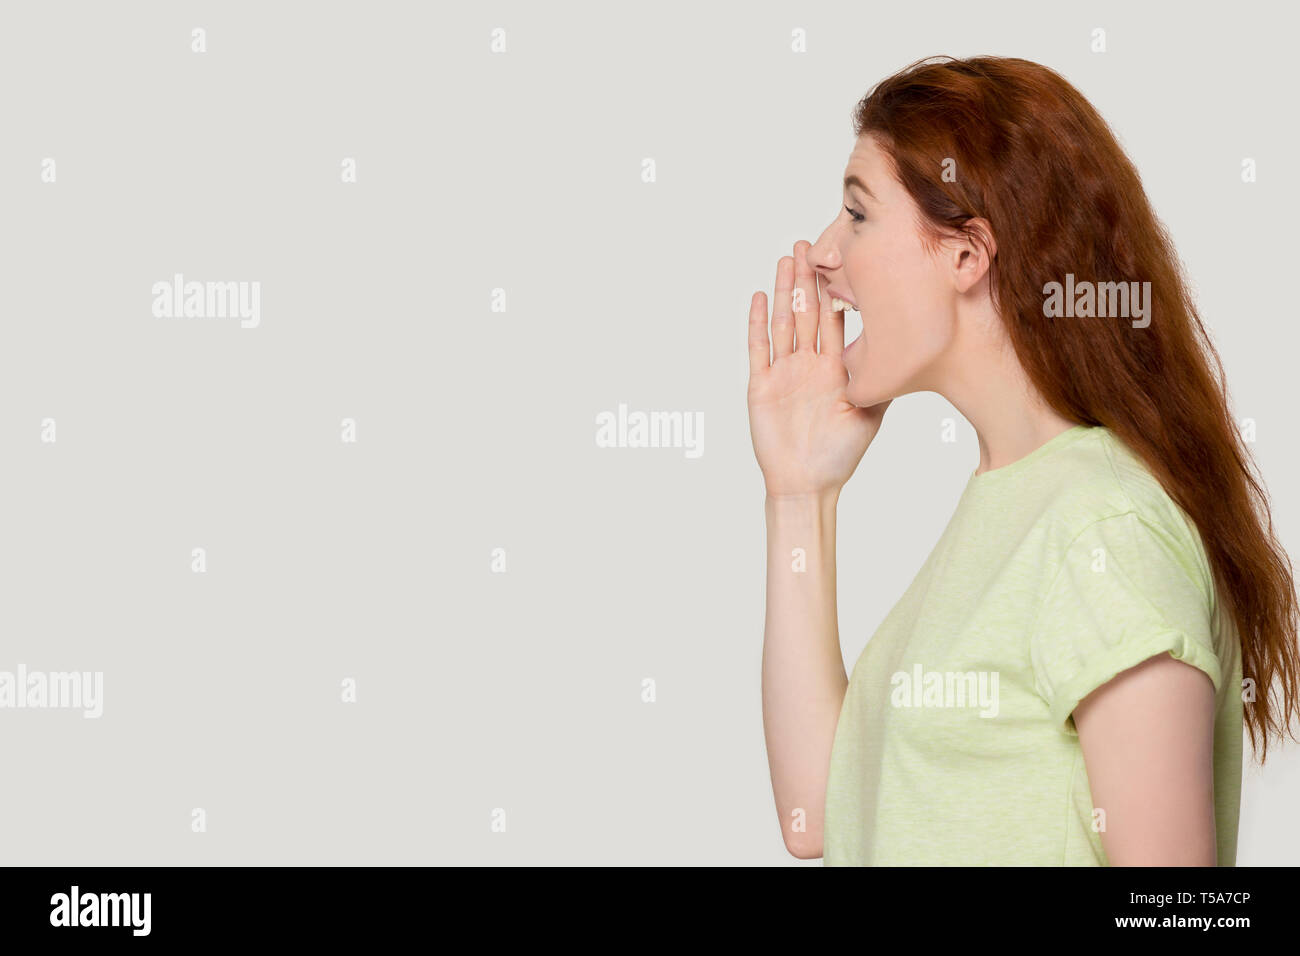 Excited redhead woman shout loudly about sale offer - Stock Image